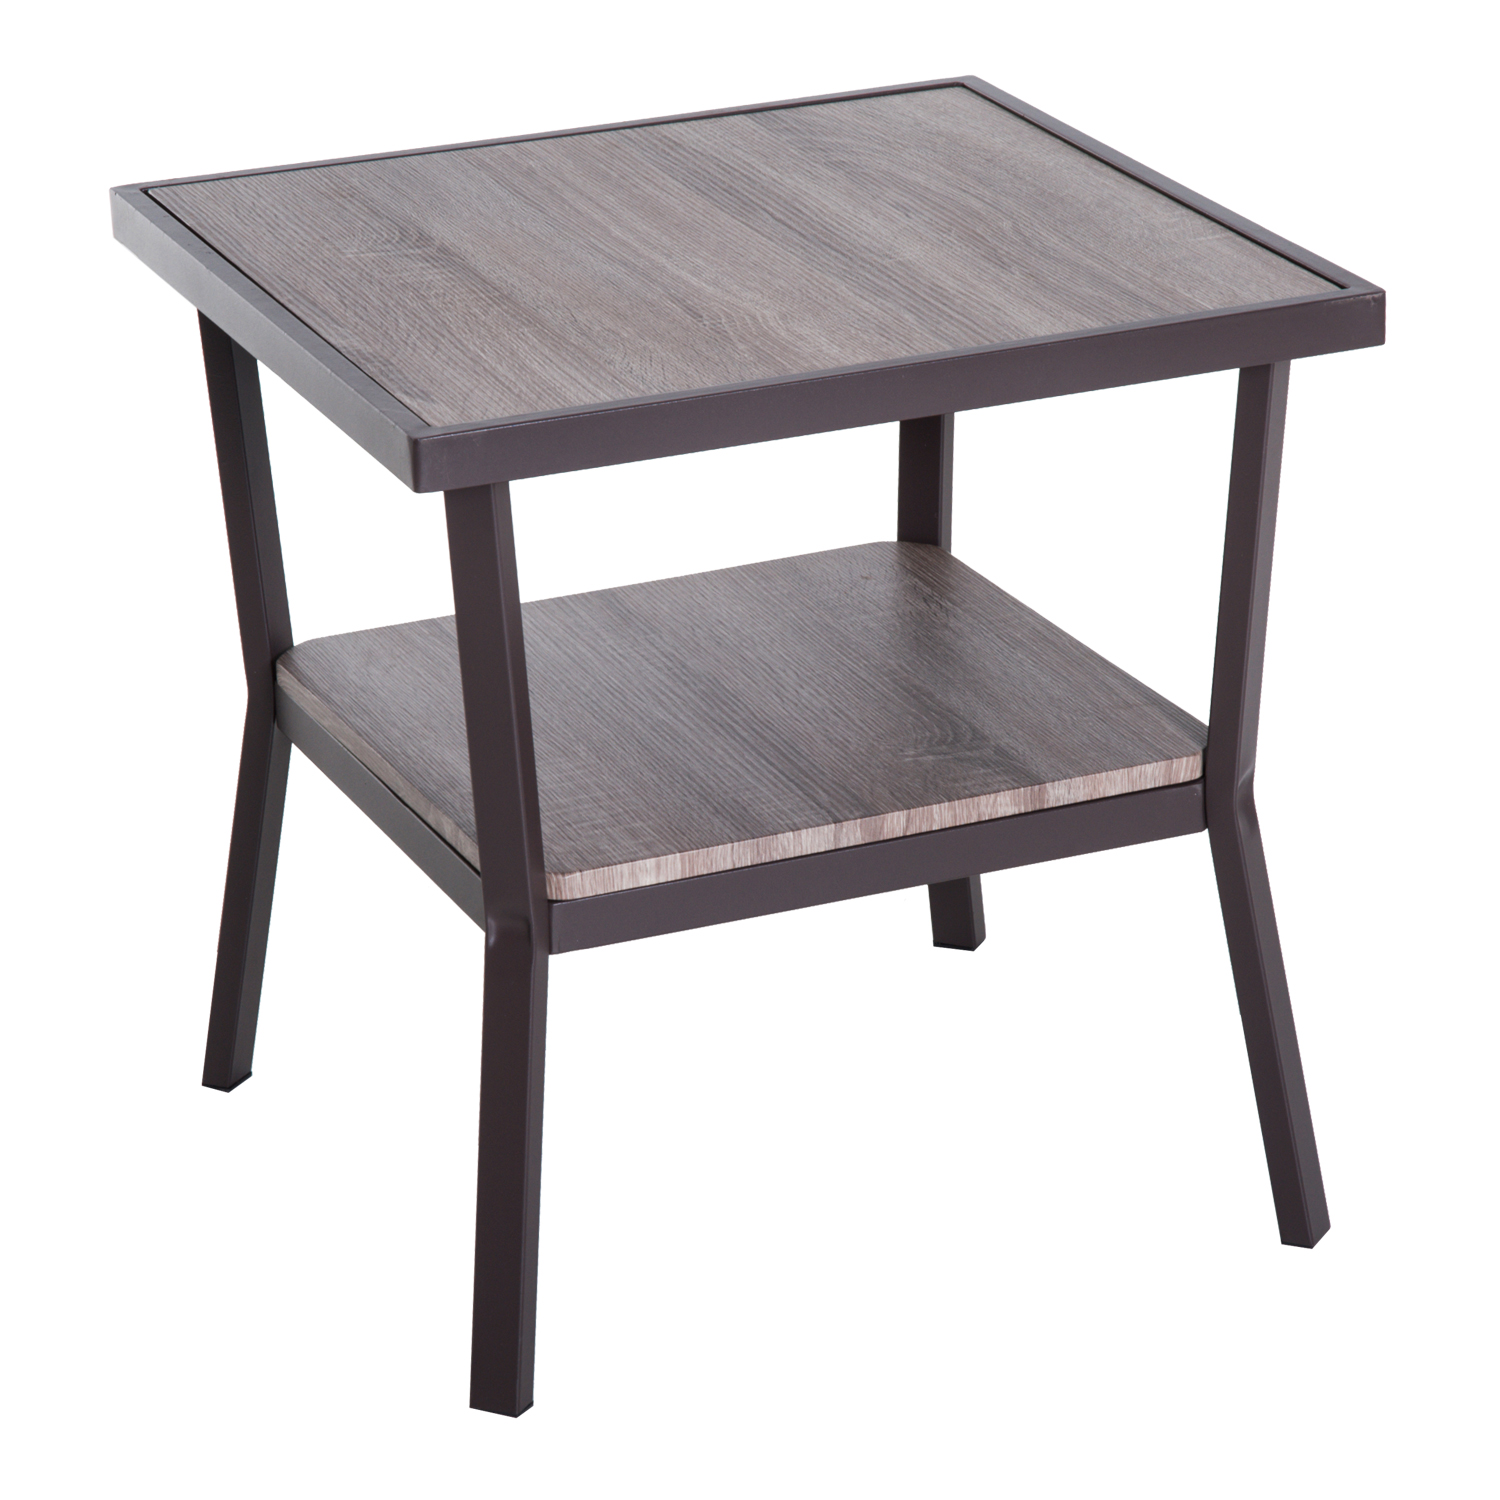 aosom homcom rustic industrial minimal two tier wooden accent end outdoor wood table light brown woodgrain patio loveseat clearance diy large coffee target metal address plaques